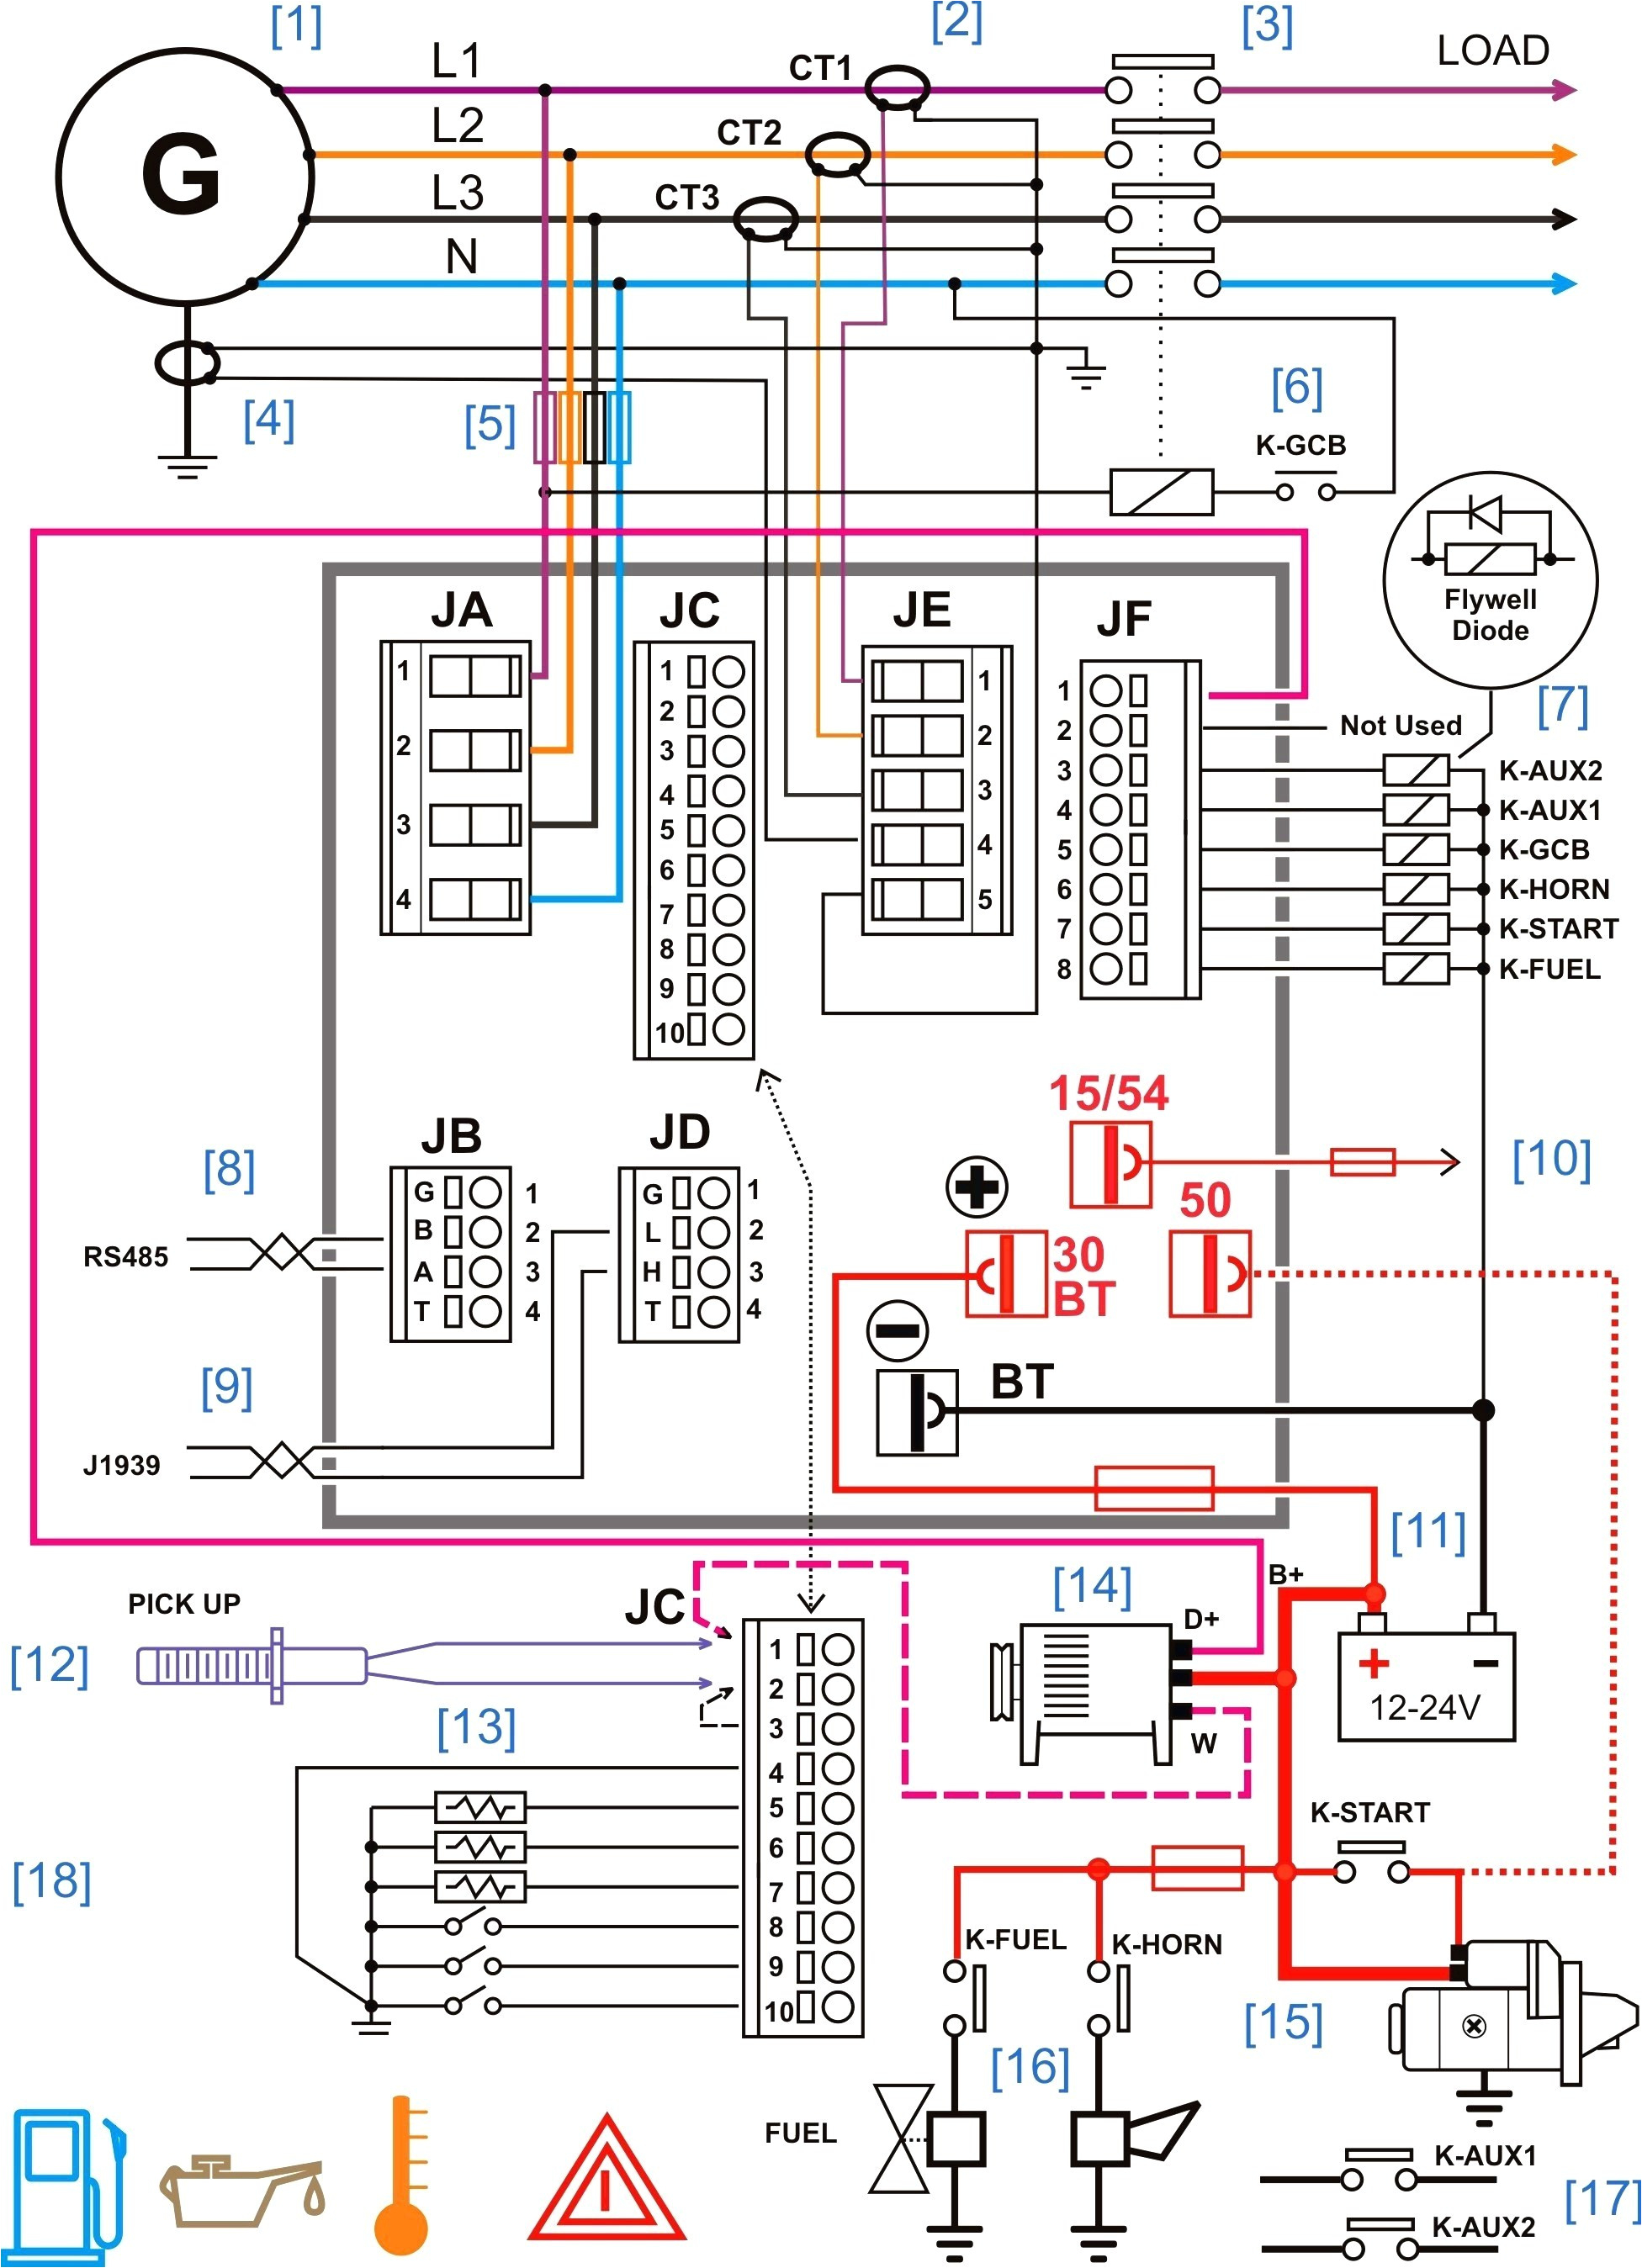 audi a4 stereo wiring diagram awesome audi tt mk2 wiring diagramaudi a4 stereo wiring diagram best